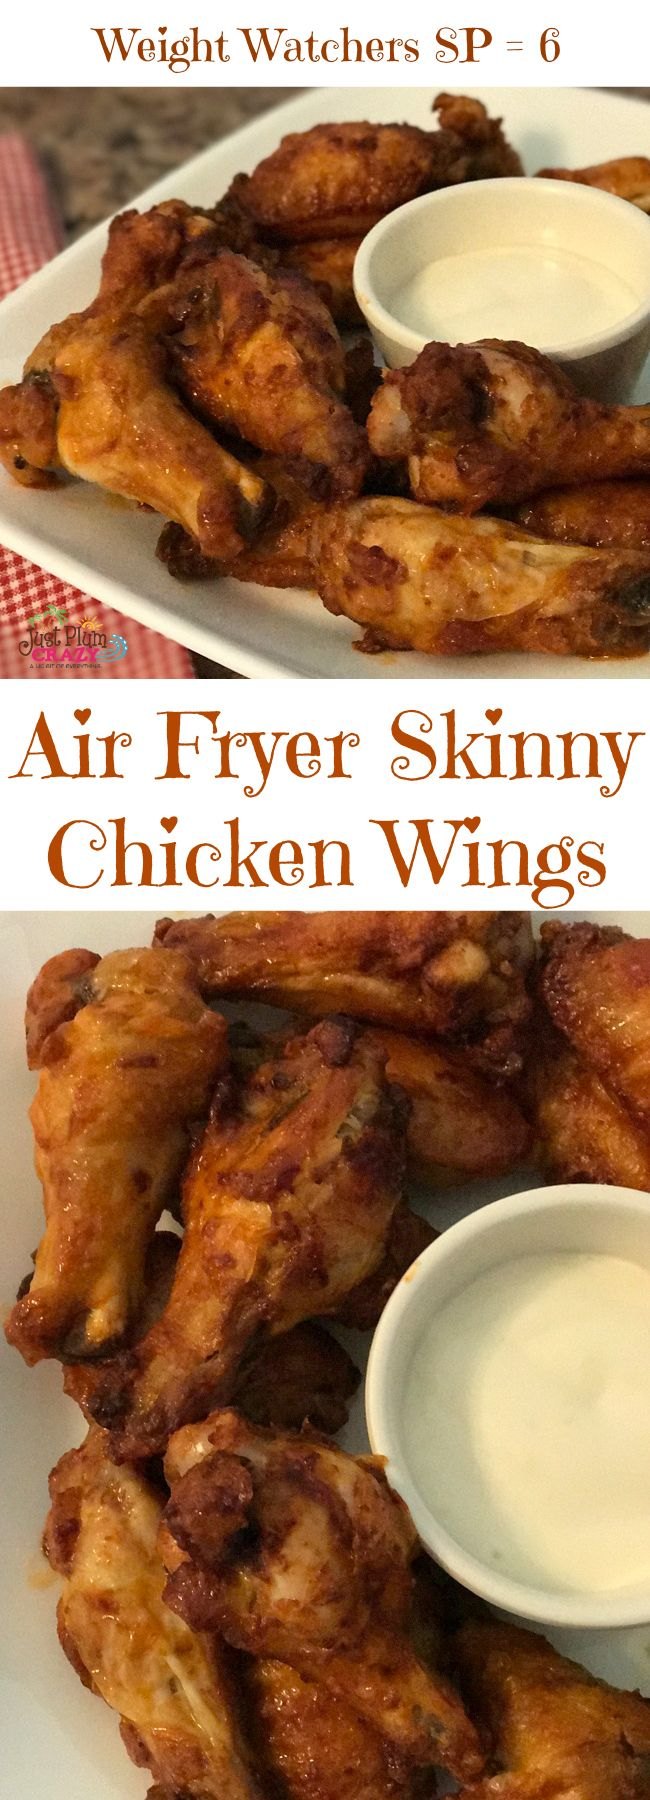 air fryer chicken wings with buffalo sauce weight wachers recipe air fryer recipes healthy air fryer recipes chicken wing recipes air fryer chicken wings with buffalo